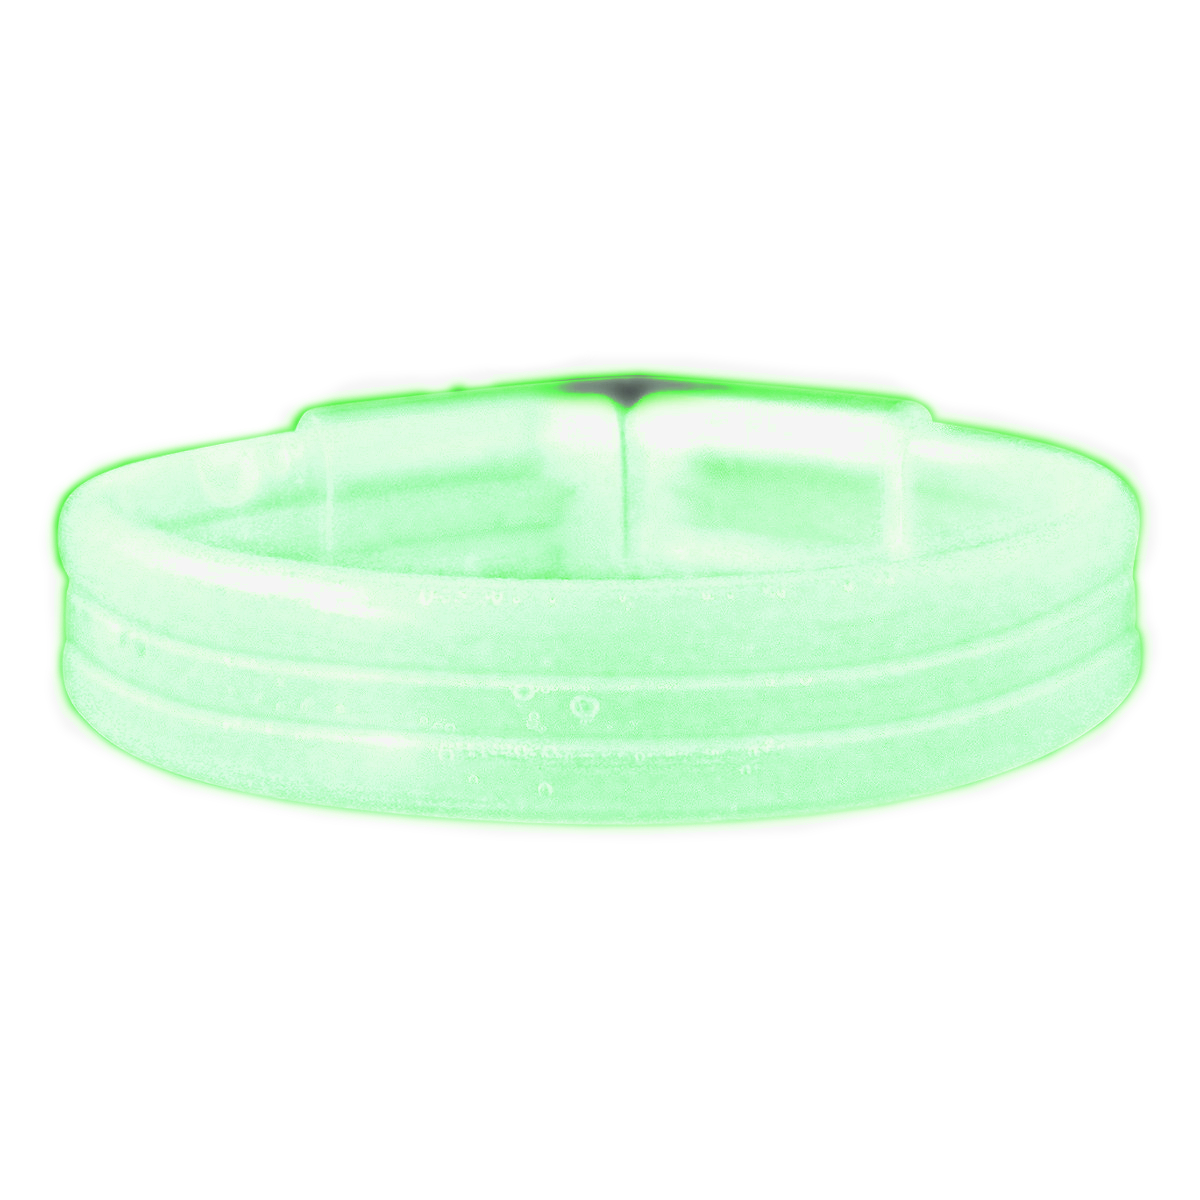 Wide Glow Stick 8 Inch Bracelet Green Pack of 25 All Products